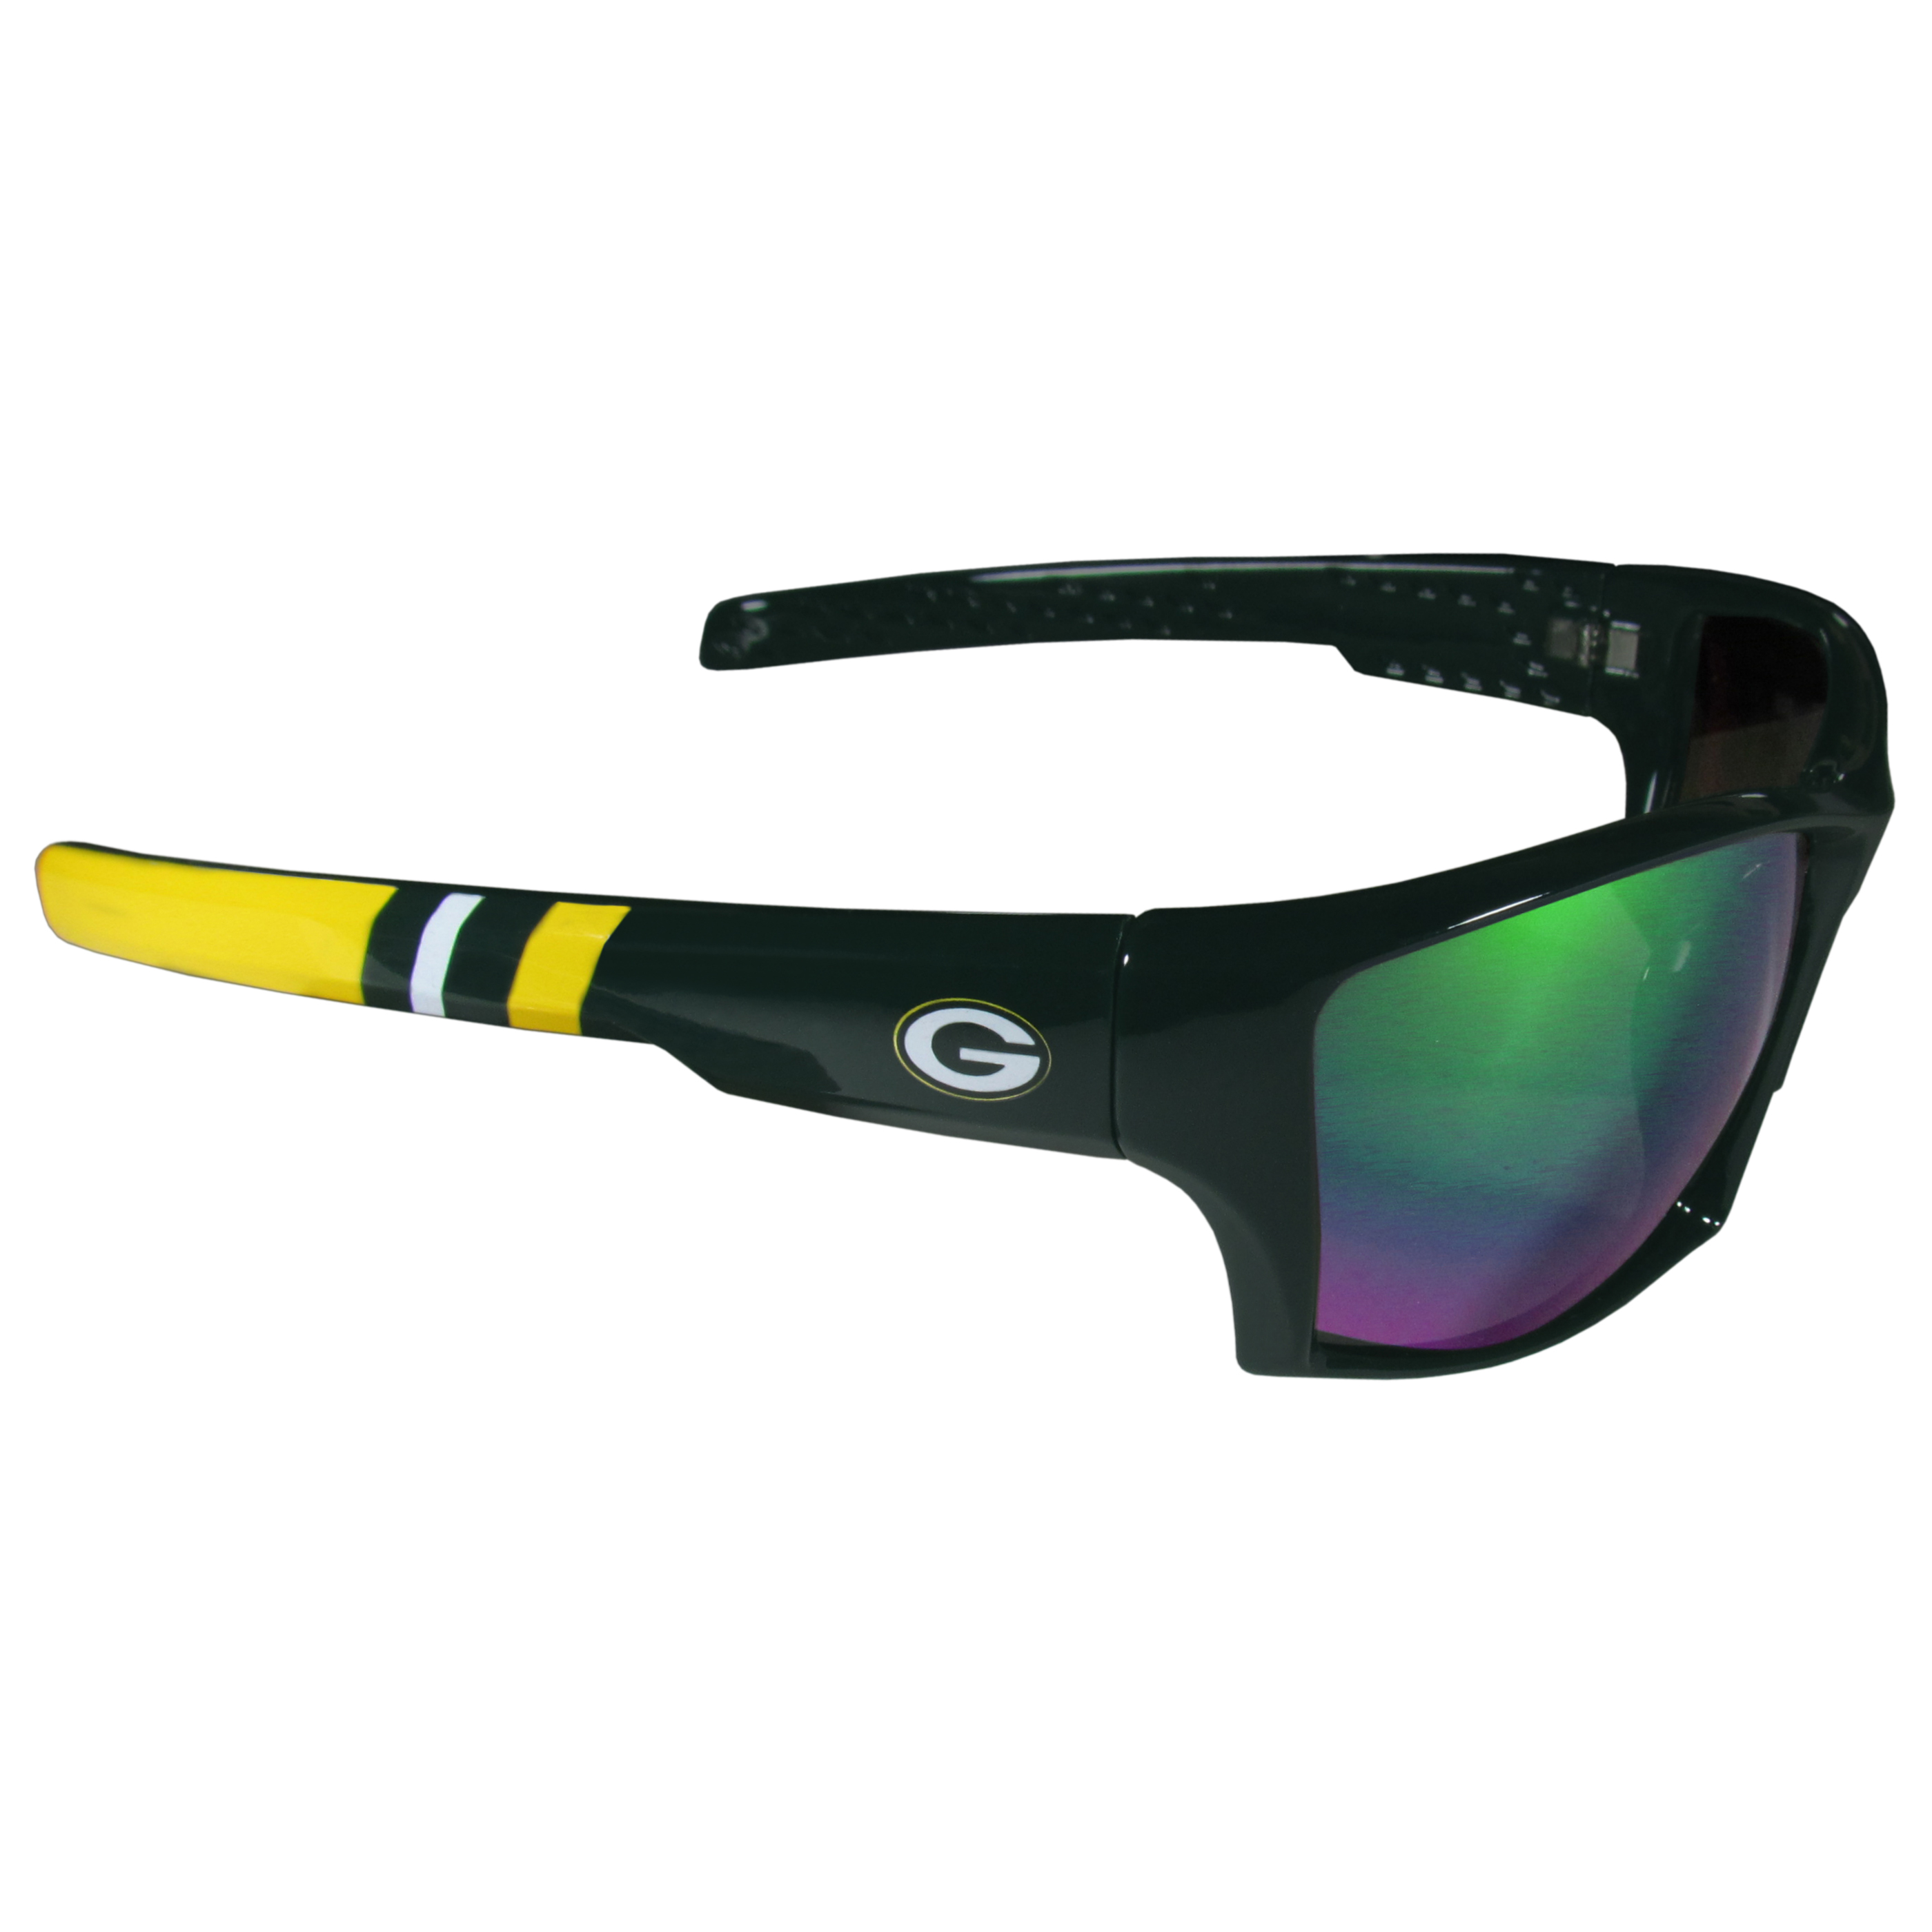 Green Bay Packers Edge Wrap Sunglasses - Be an icon of edgy style while you're in the stadium cheering your Green Bay Packers to victory with our polarized wrap sunglasses that feature 100% UVA/UVB rating for maximum UV protection. The light-weight frames are built to last with flex hinges for comfort and durability which make them perfect for driving or just lounging by the pool. The colorful rubber grips on the arms of these fashionable sunglasses make them perfect for someone with an active lifestyle. Whether you are hiking, fishing, boating, running on the beach, golfing or playing your favorite sport these designer frames will set you apart. Our edge wrap sunglasses are true quality eyewear at an affordable price. The wrap style frames come with team colored stripes and team logos so you can show off your die-hard team pride while protecting your eyes from those bright sun rays.